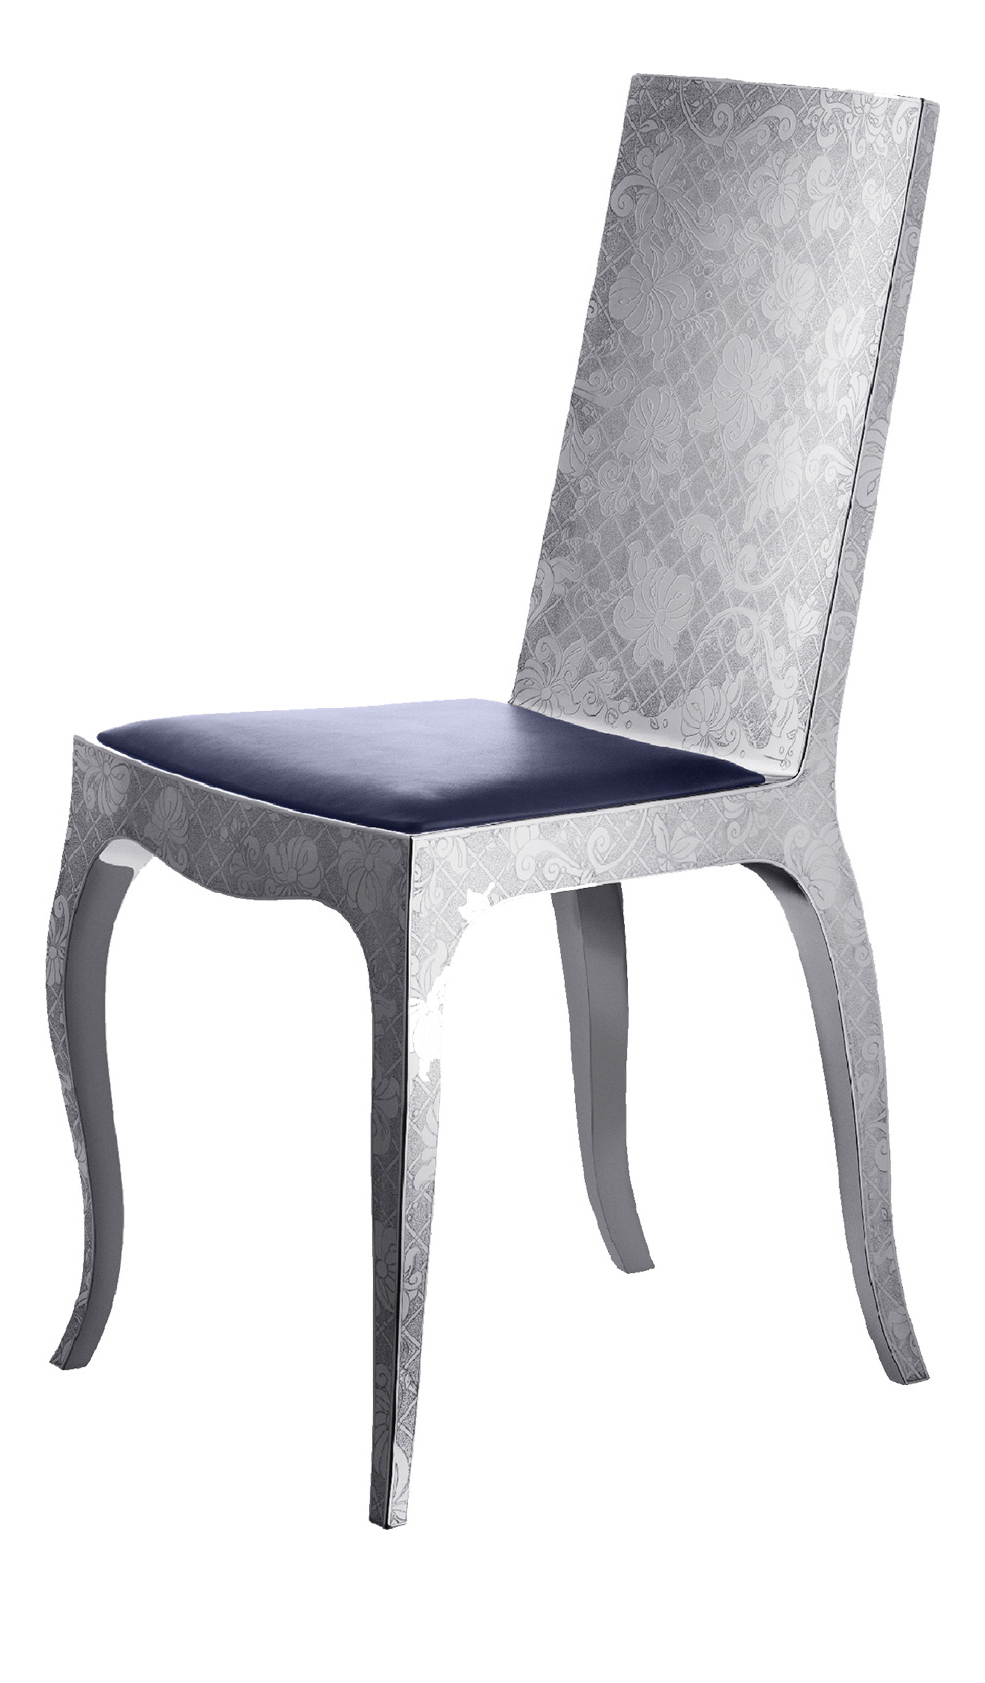 Chair christofle jardin d eden 05700006 for Jardin d eden